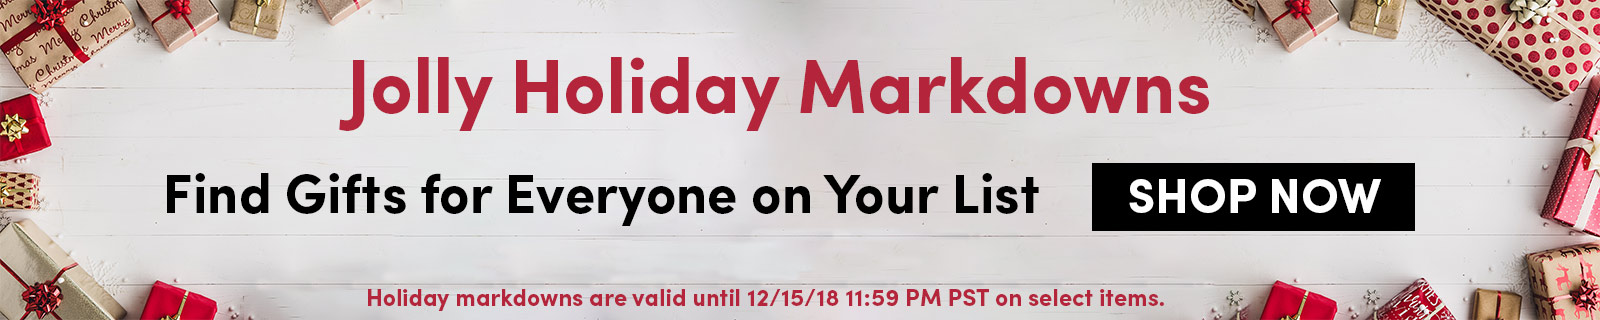 Jolly Holiday Markdowns. Find Gifts for Everyone on Your List SHOP NOW